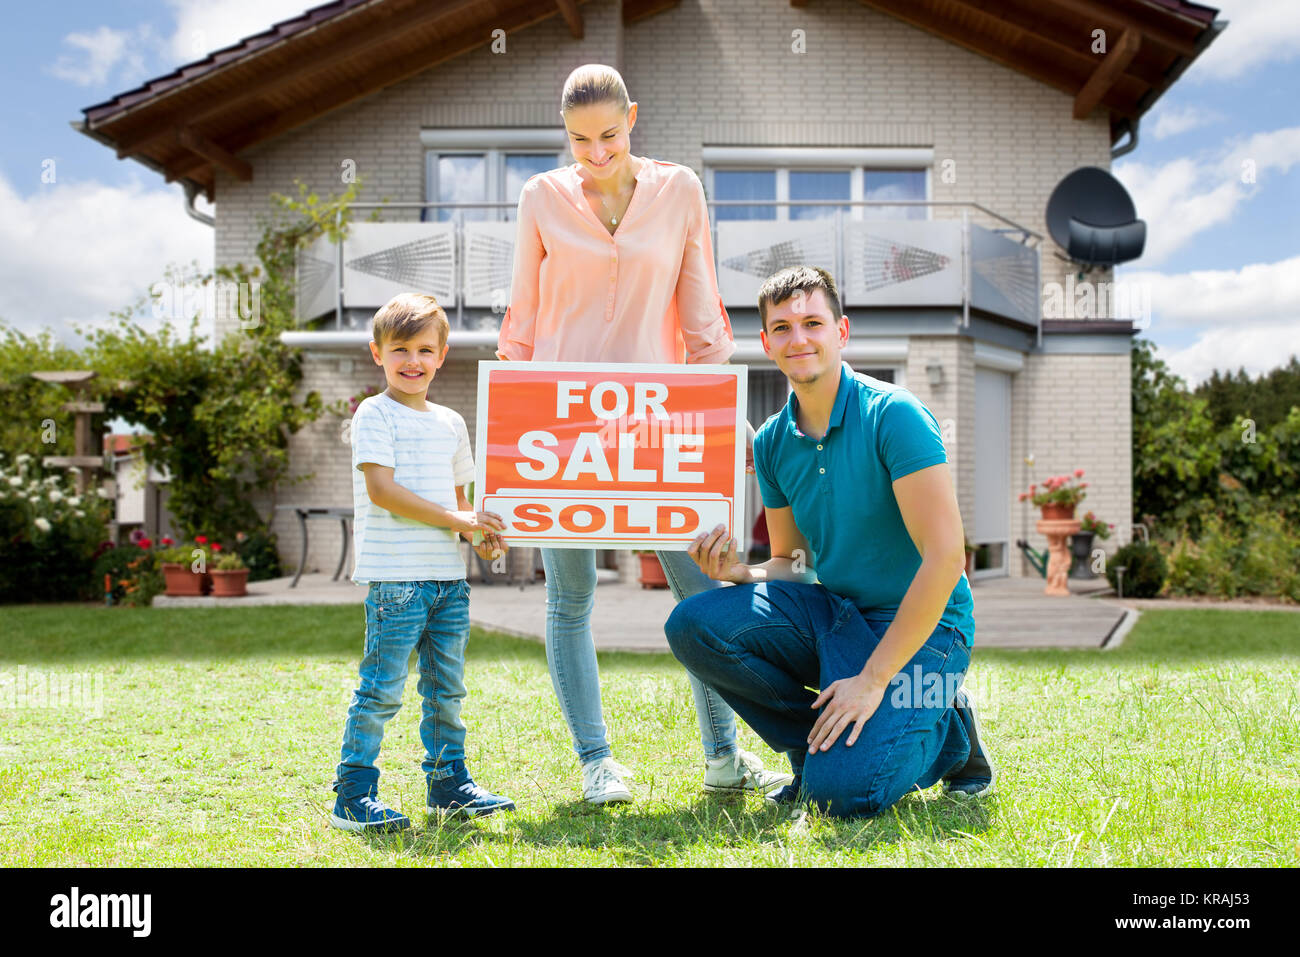 Family With A Sale Sign Outside Their Home - Stock Image